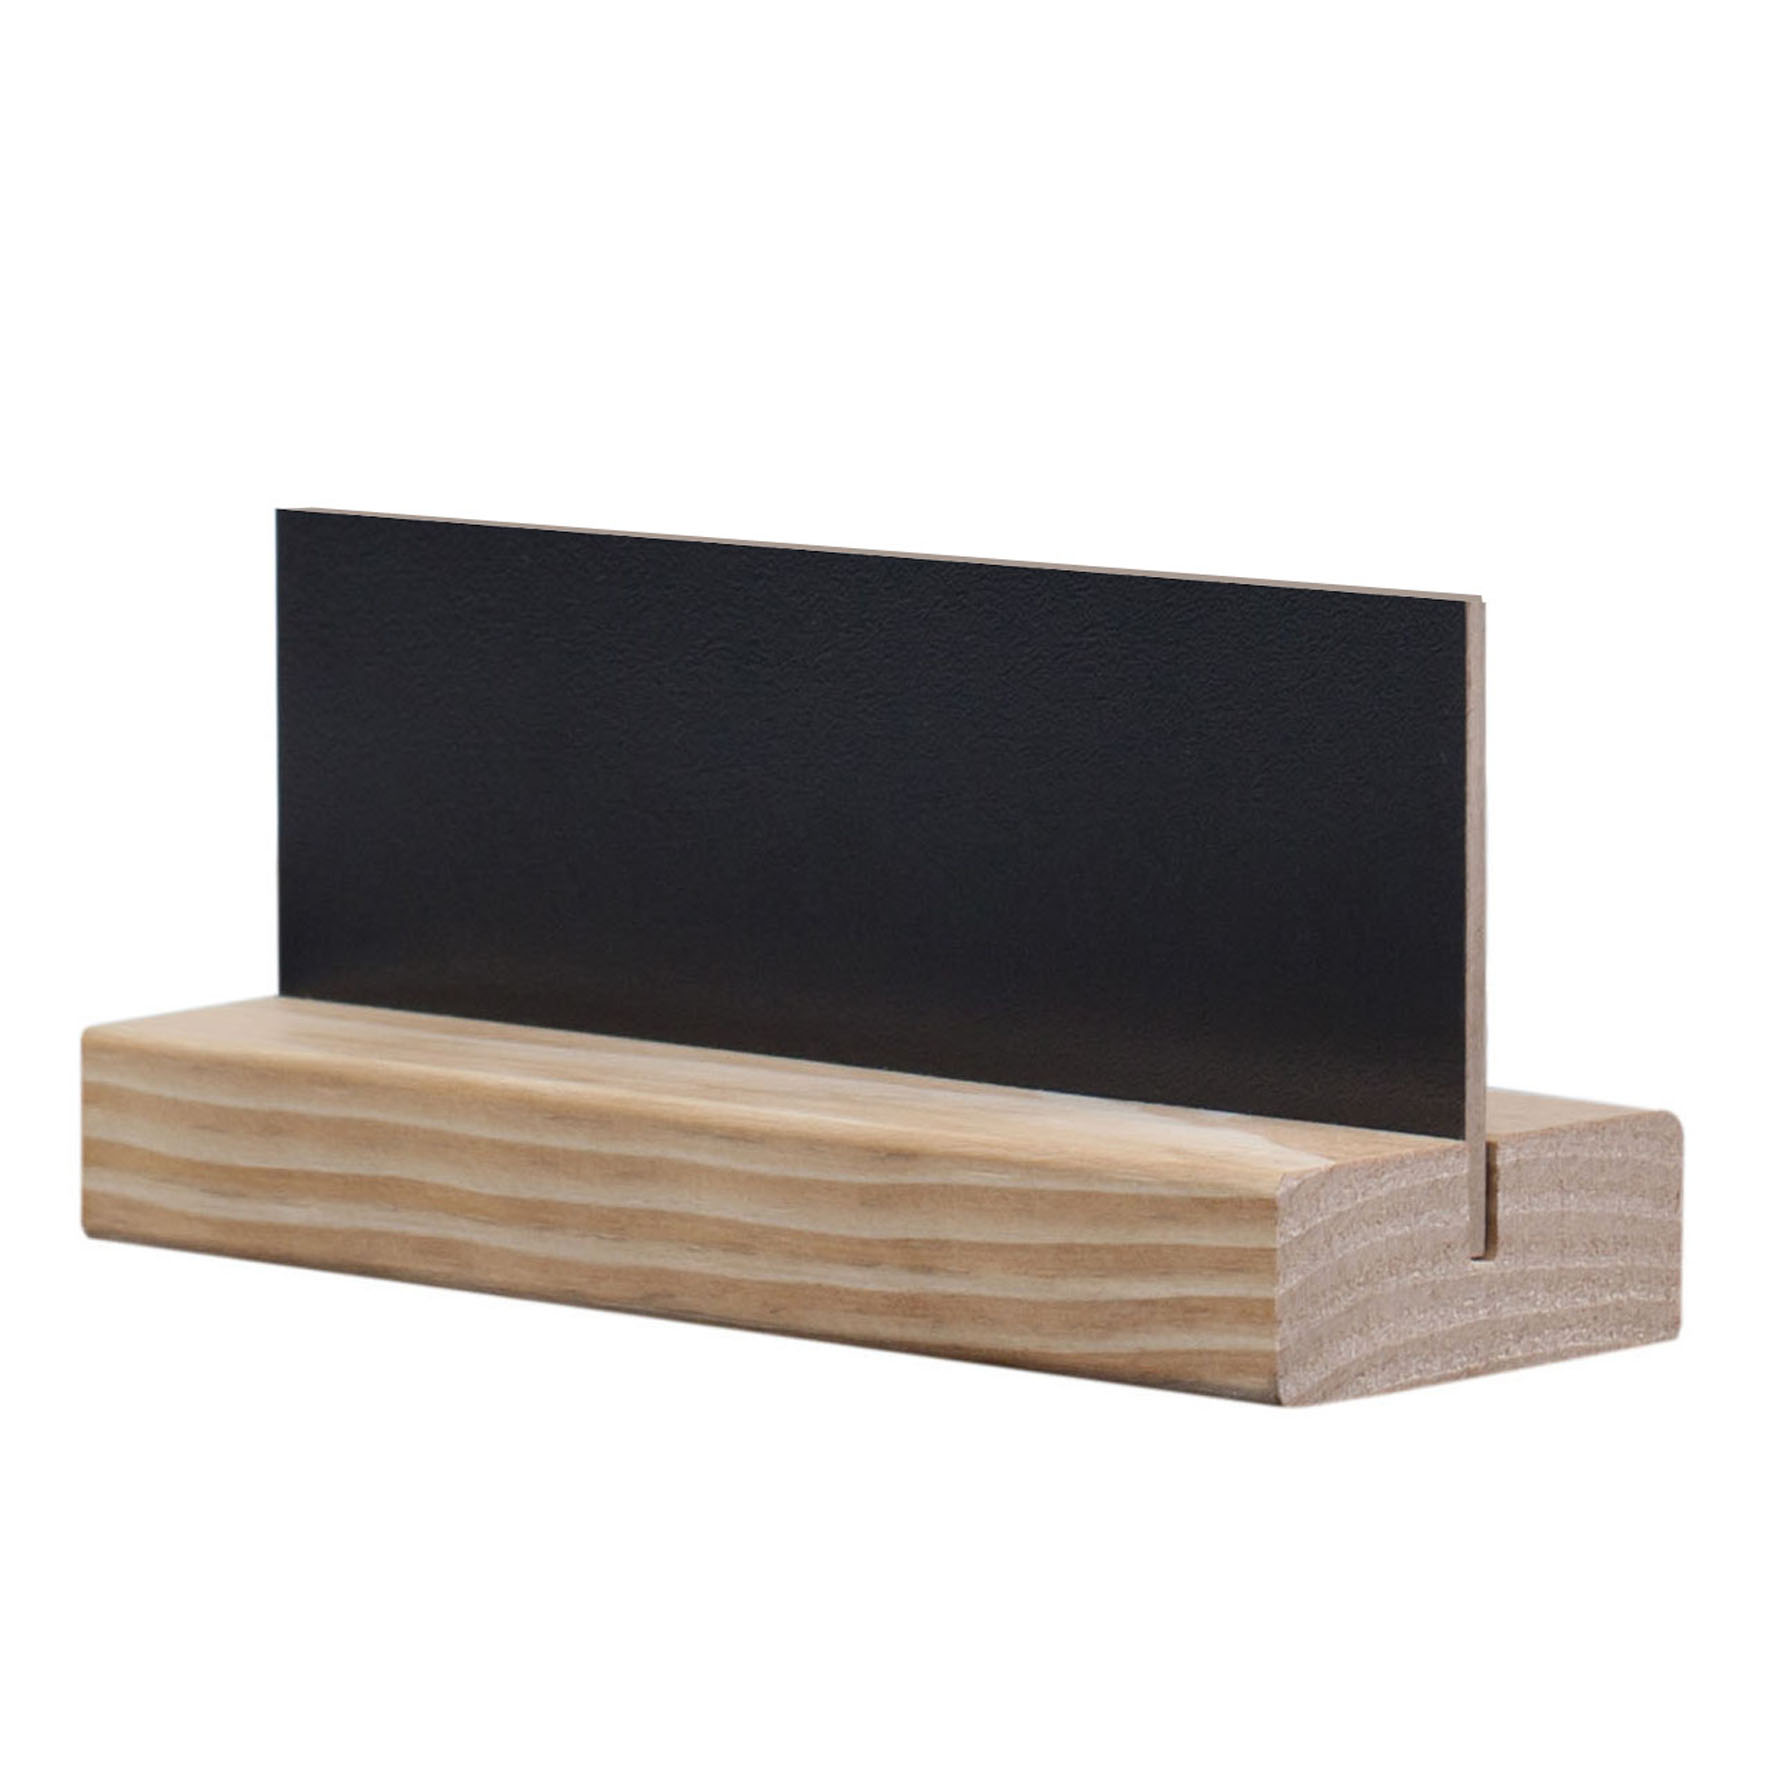 Wandplank 15 Cm.Blackboard D4 Style Modigliani 8 X 15 Cm For The Table With Basis Colo